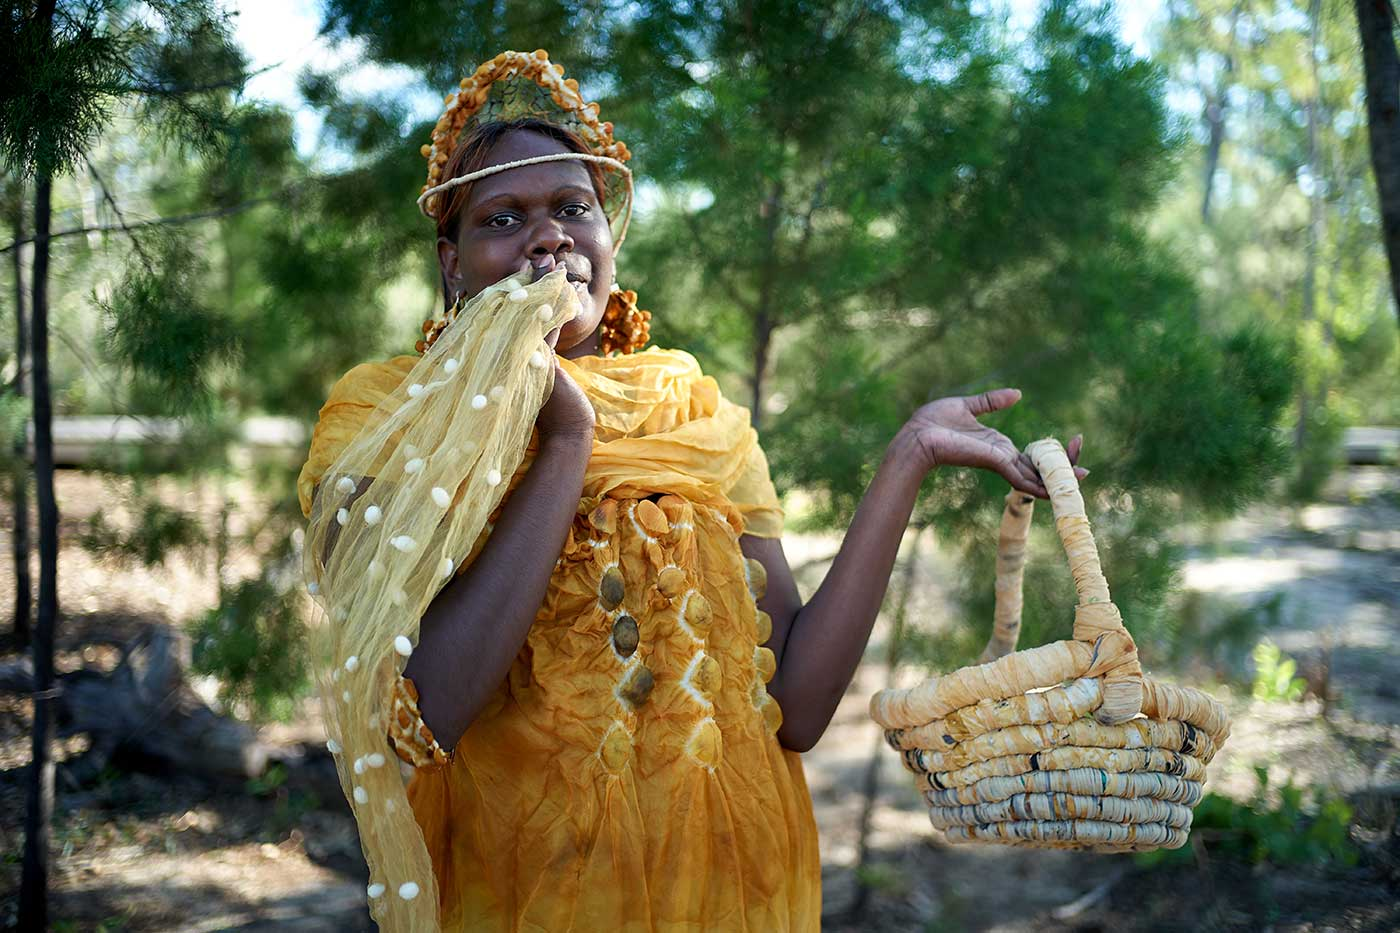 Woman wearing a yellow dress, shawl and hat, and holding a basket - click to view larger image